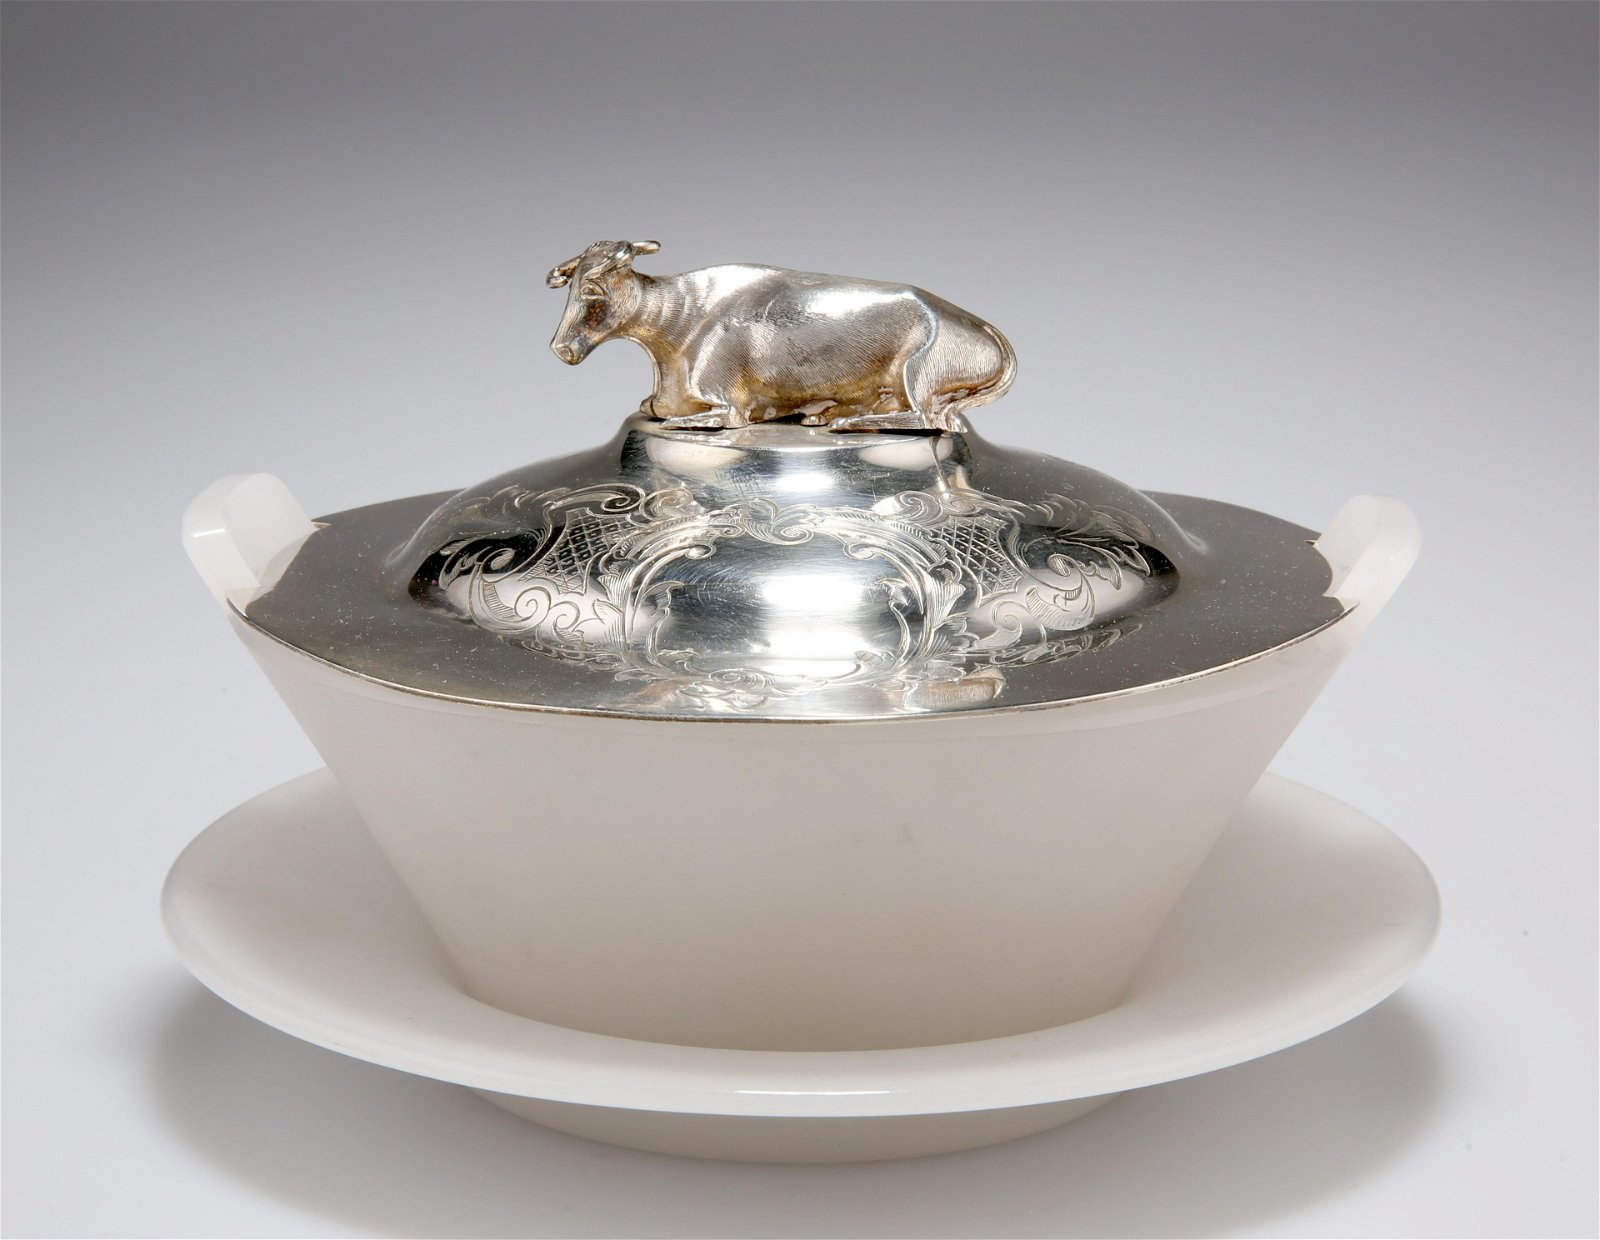 A VICTORIAN SILVER-LIDDED GLASS BUTTER DISH AND STAND,